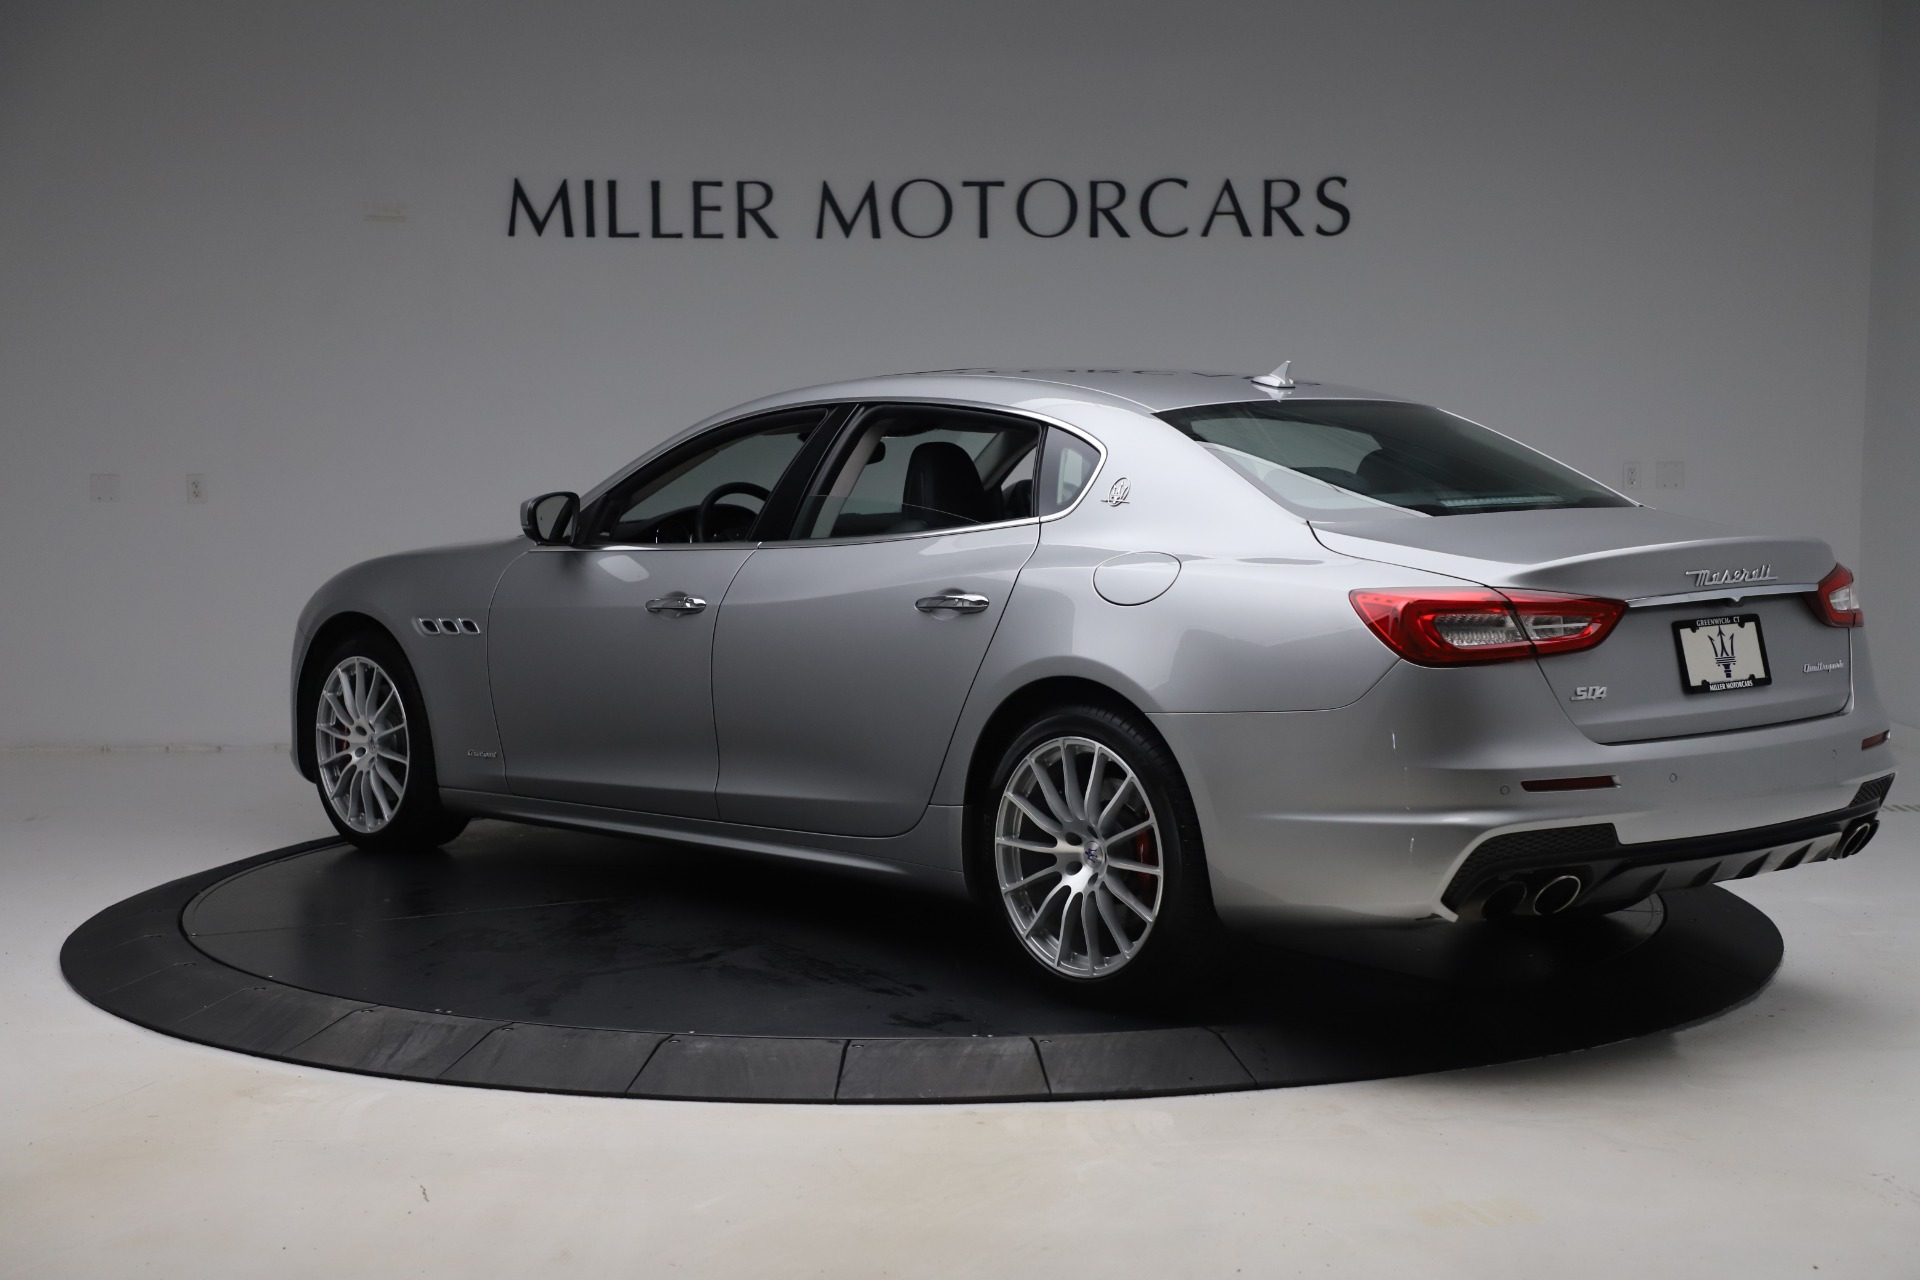 used 2014 maserati ghibli for sale pricing features autos post. Black Bedroom Furniture Sets. Home Design Ideas